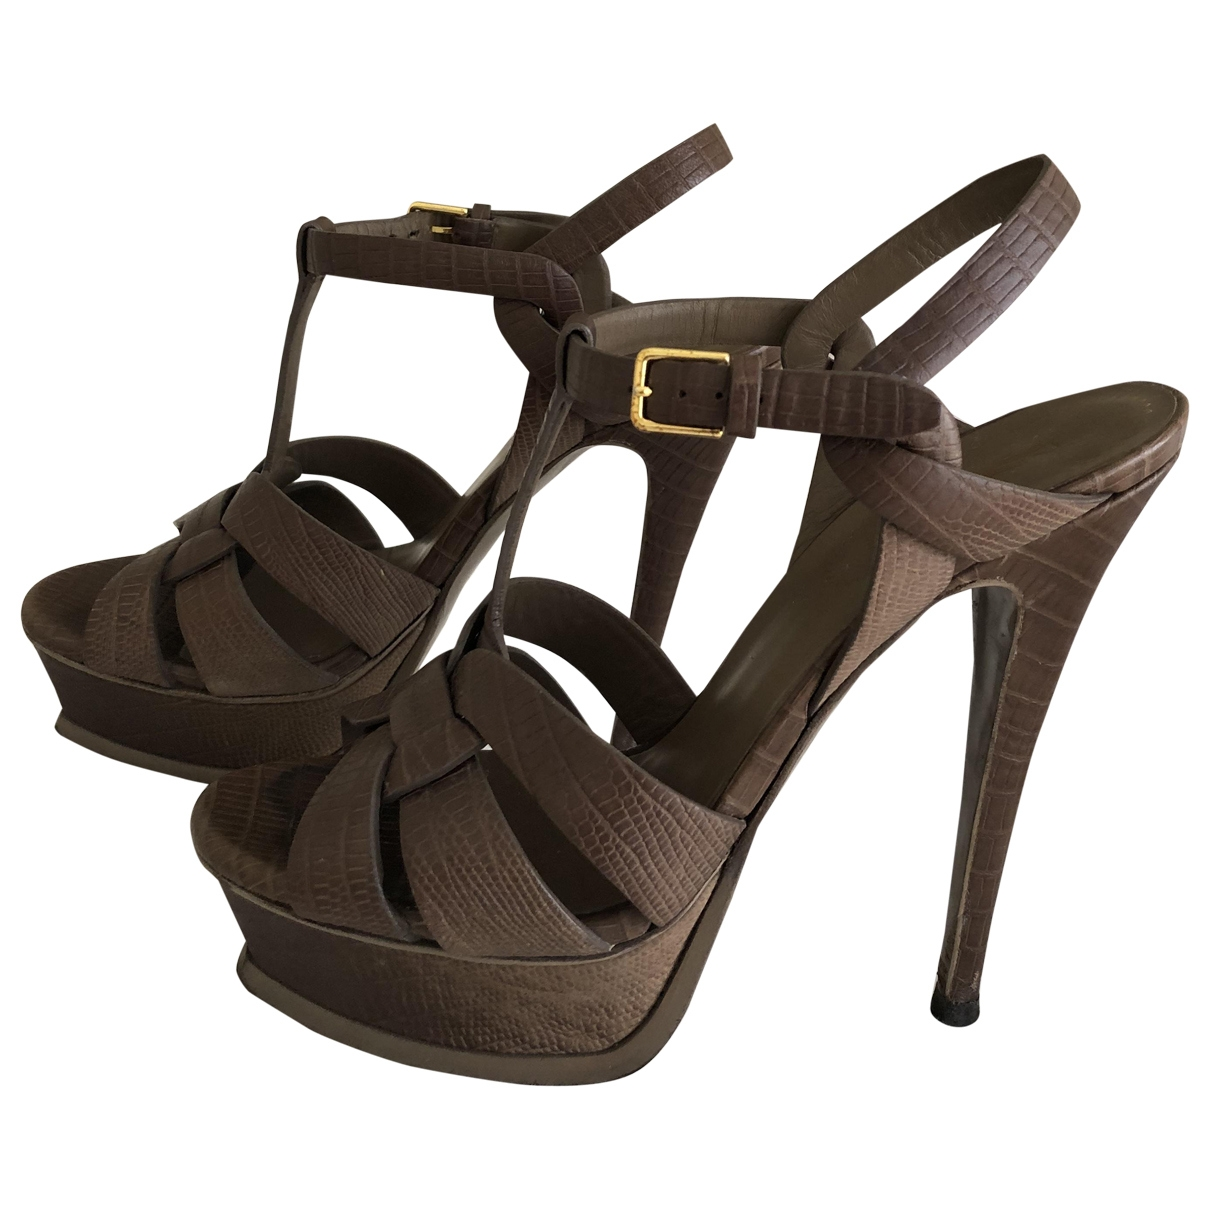 Yves Saint Laurent Tribute Sandalen in  Braun Leder